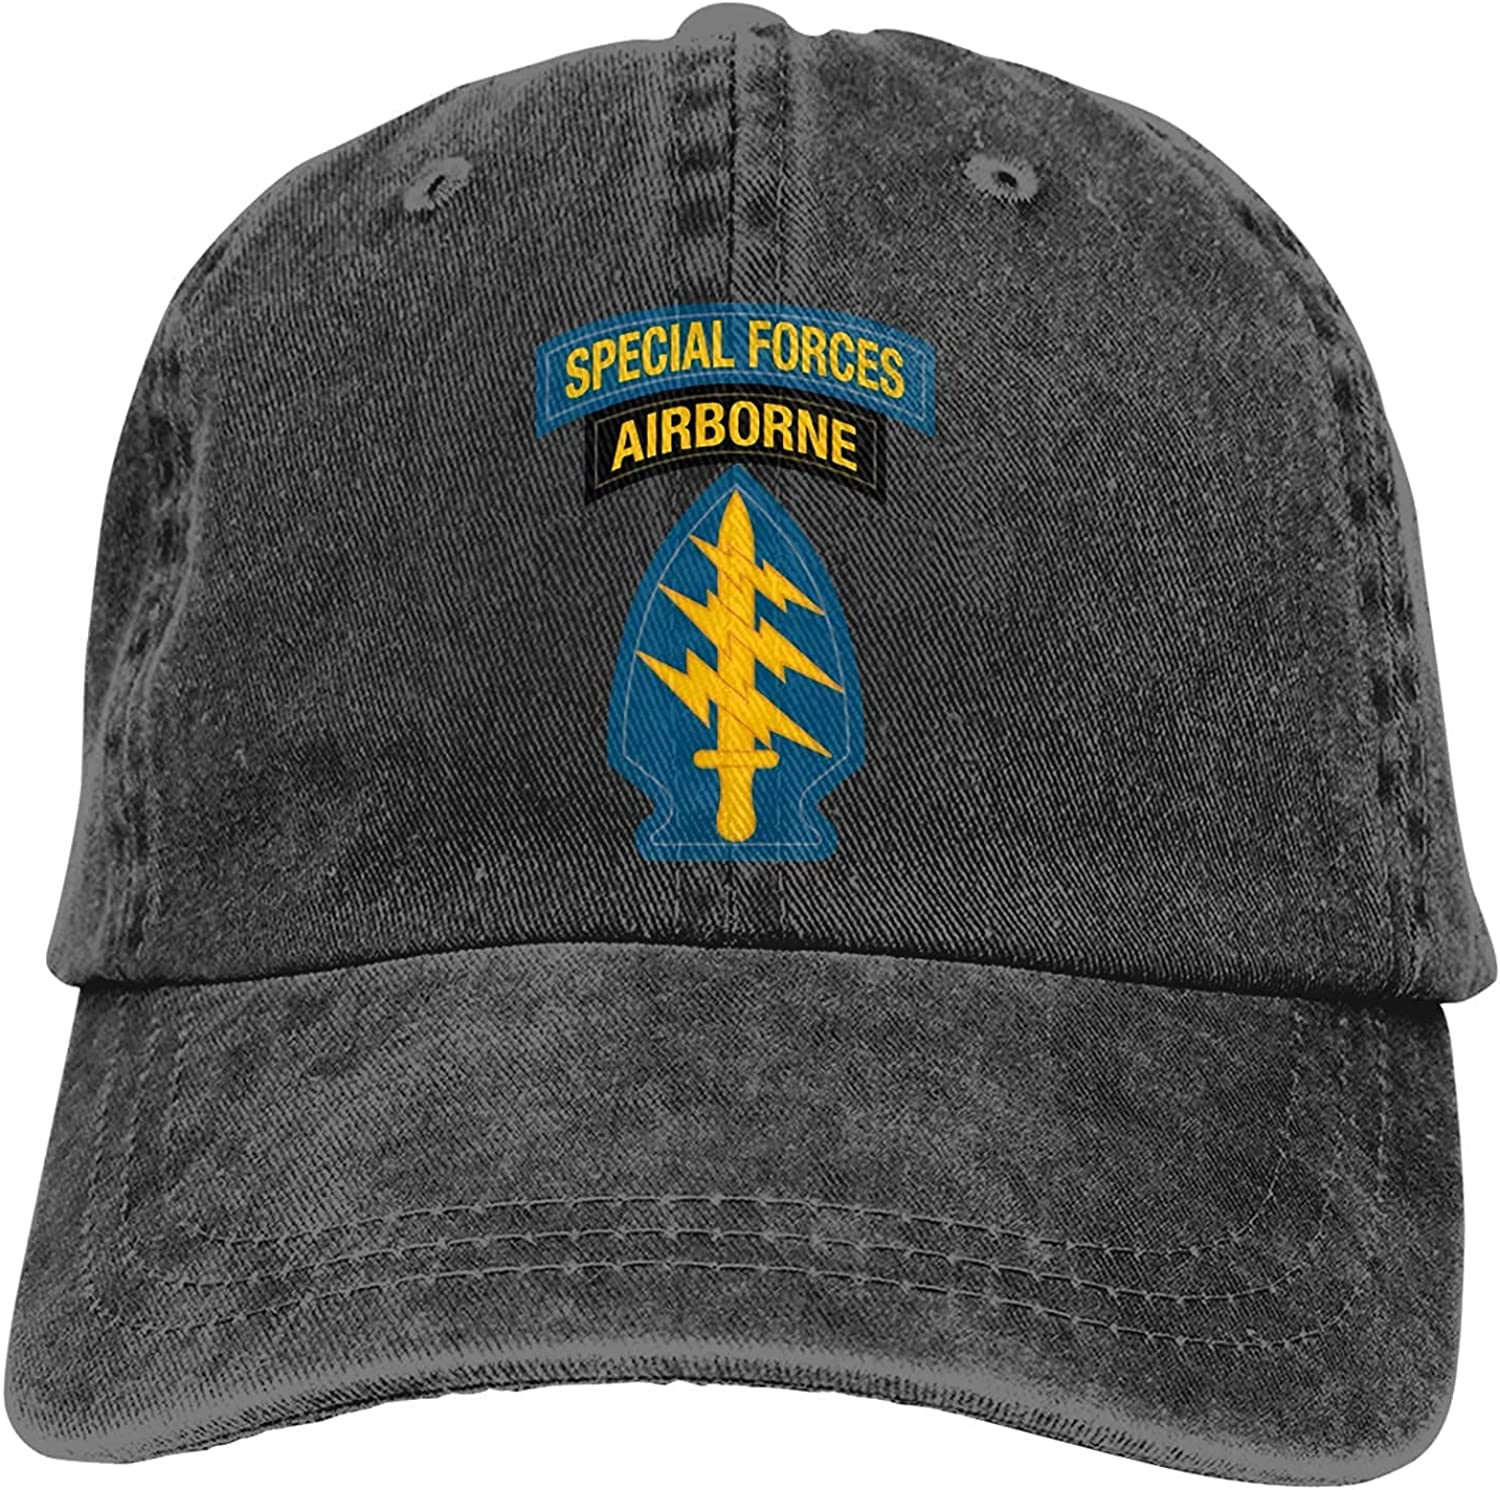 U.S. Army Special Forces Outdoor Men's Baseball Cap Sports and Leisure Adjustable Cowboy Hat Performance Cap Red